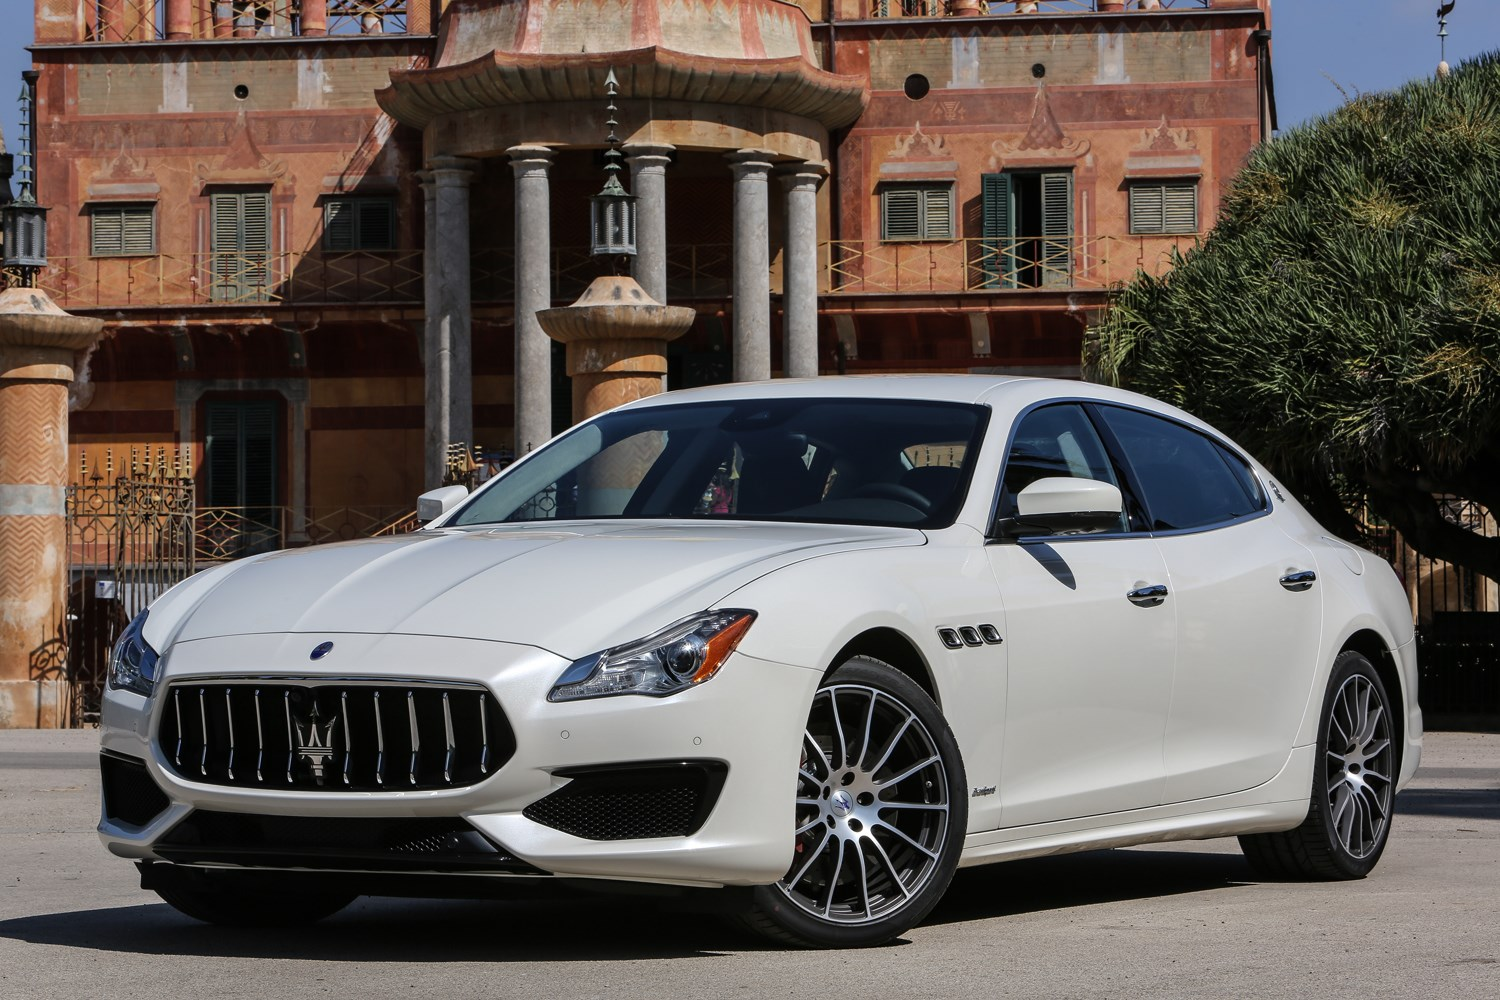 Maserati quattroporte maintenance costs